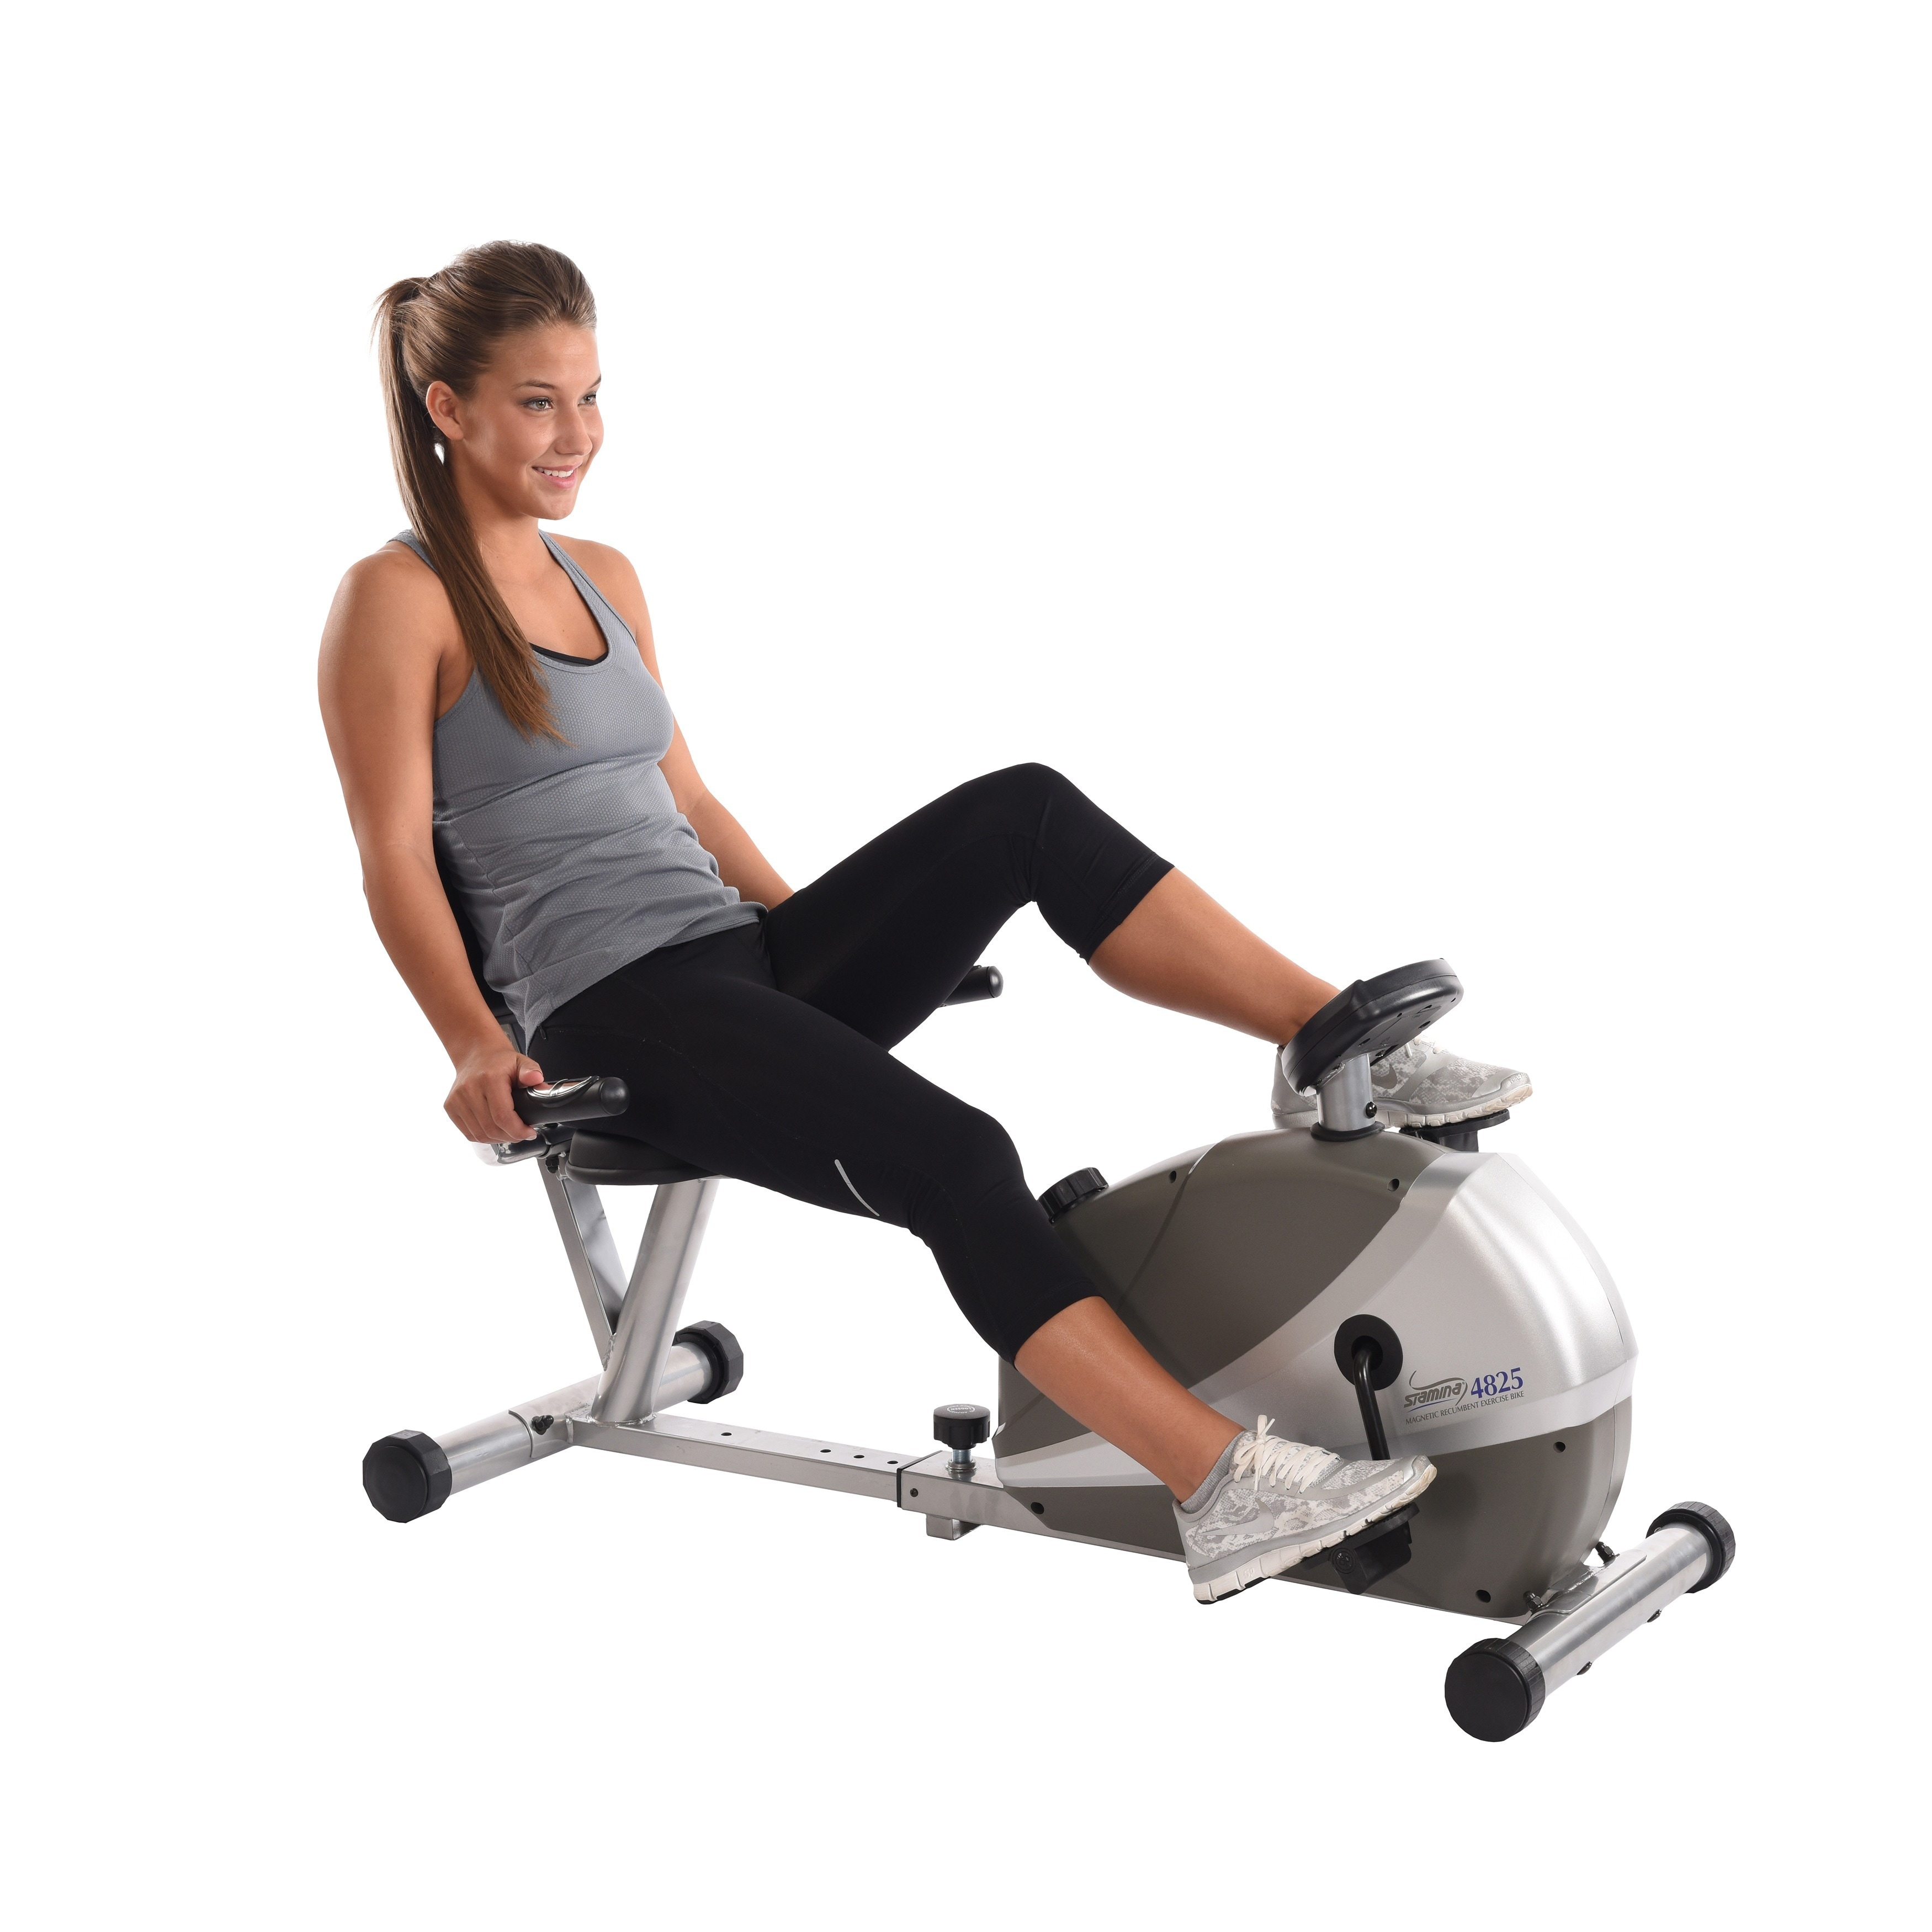 Stamina Programmable Magnetic 4825 Exercise Bike Free Shipping Today 11537980